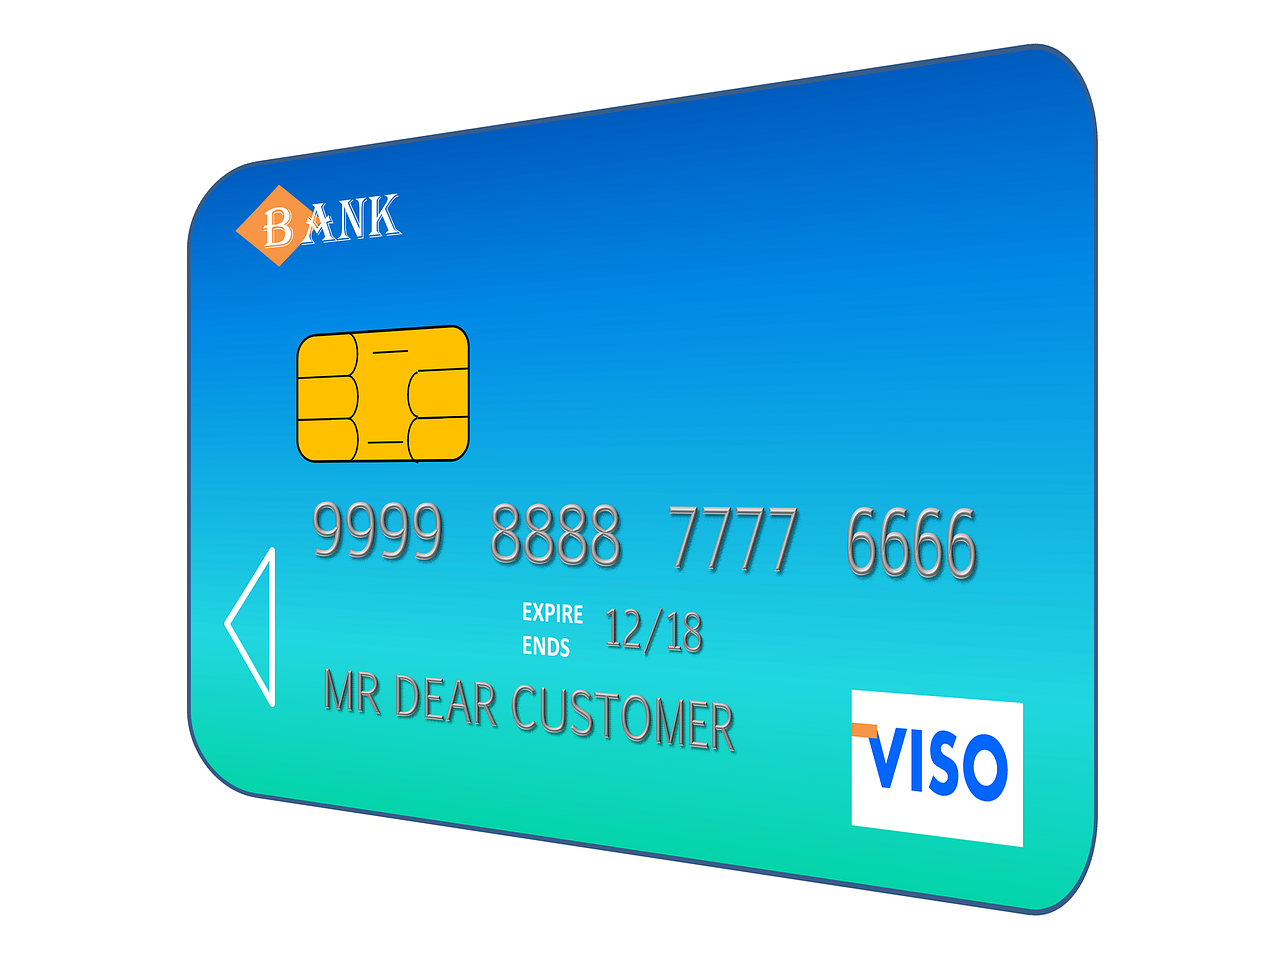 credit card payment bank free photo